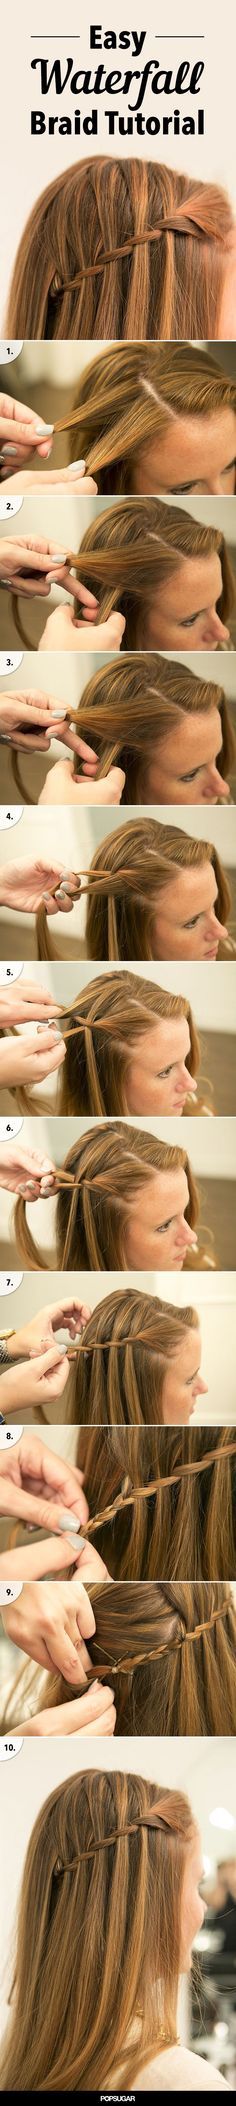 Waterfall braid, not sure if this would work for curly hair but I'll give it a go